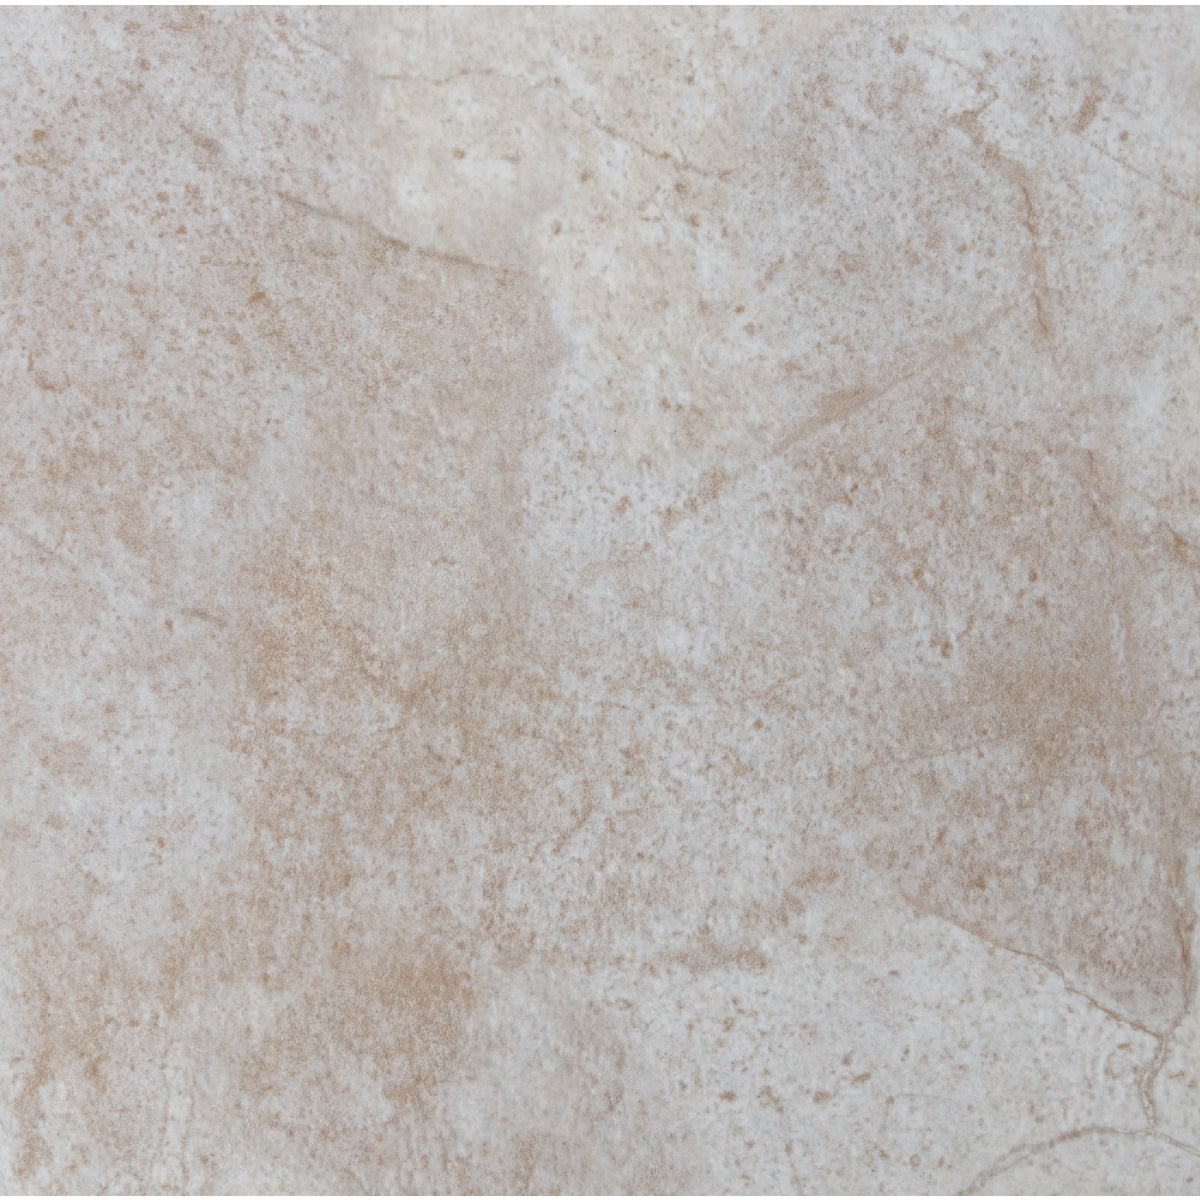 OVATIONS STONE WHITE - C8005-SS-11 by Mohawk Duraceramic